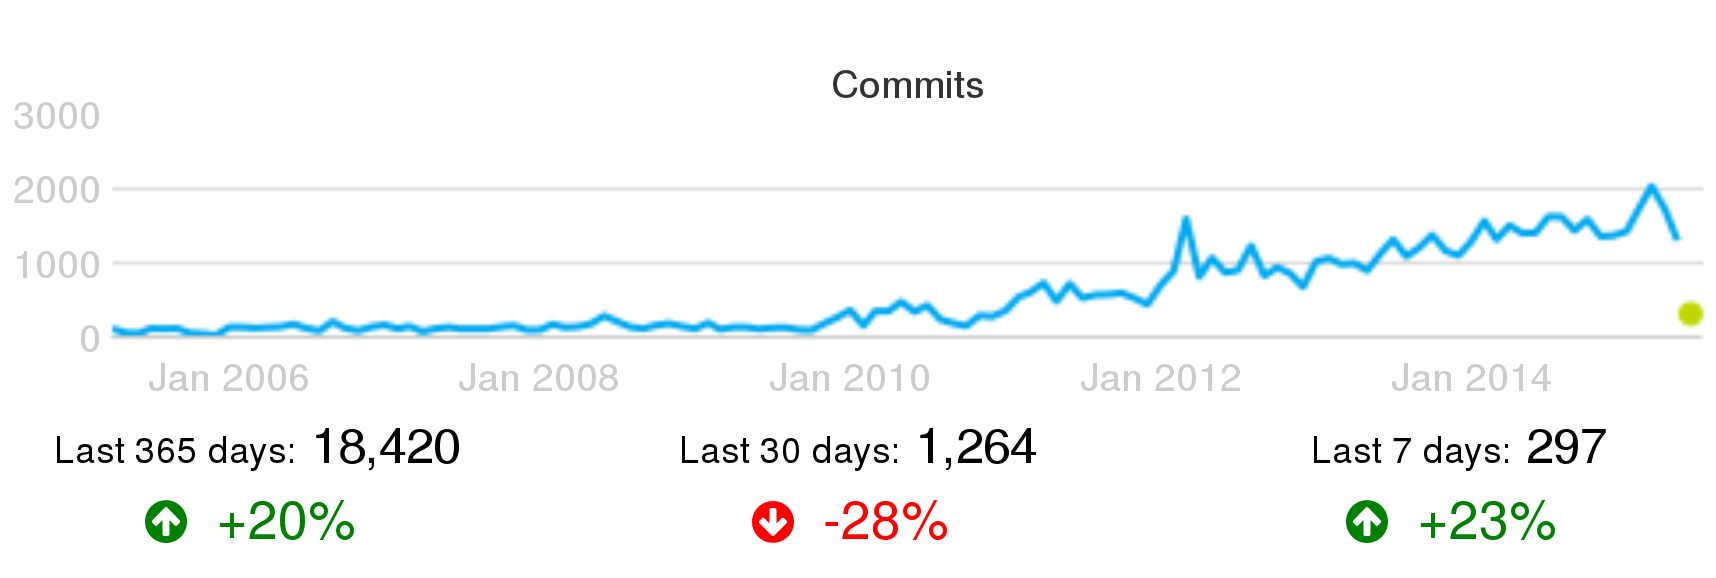 Activity in Puppet (commits per month) circa June 2015